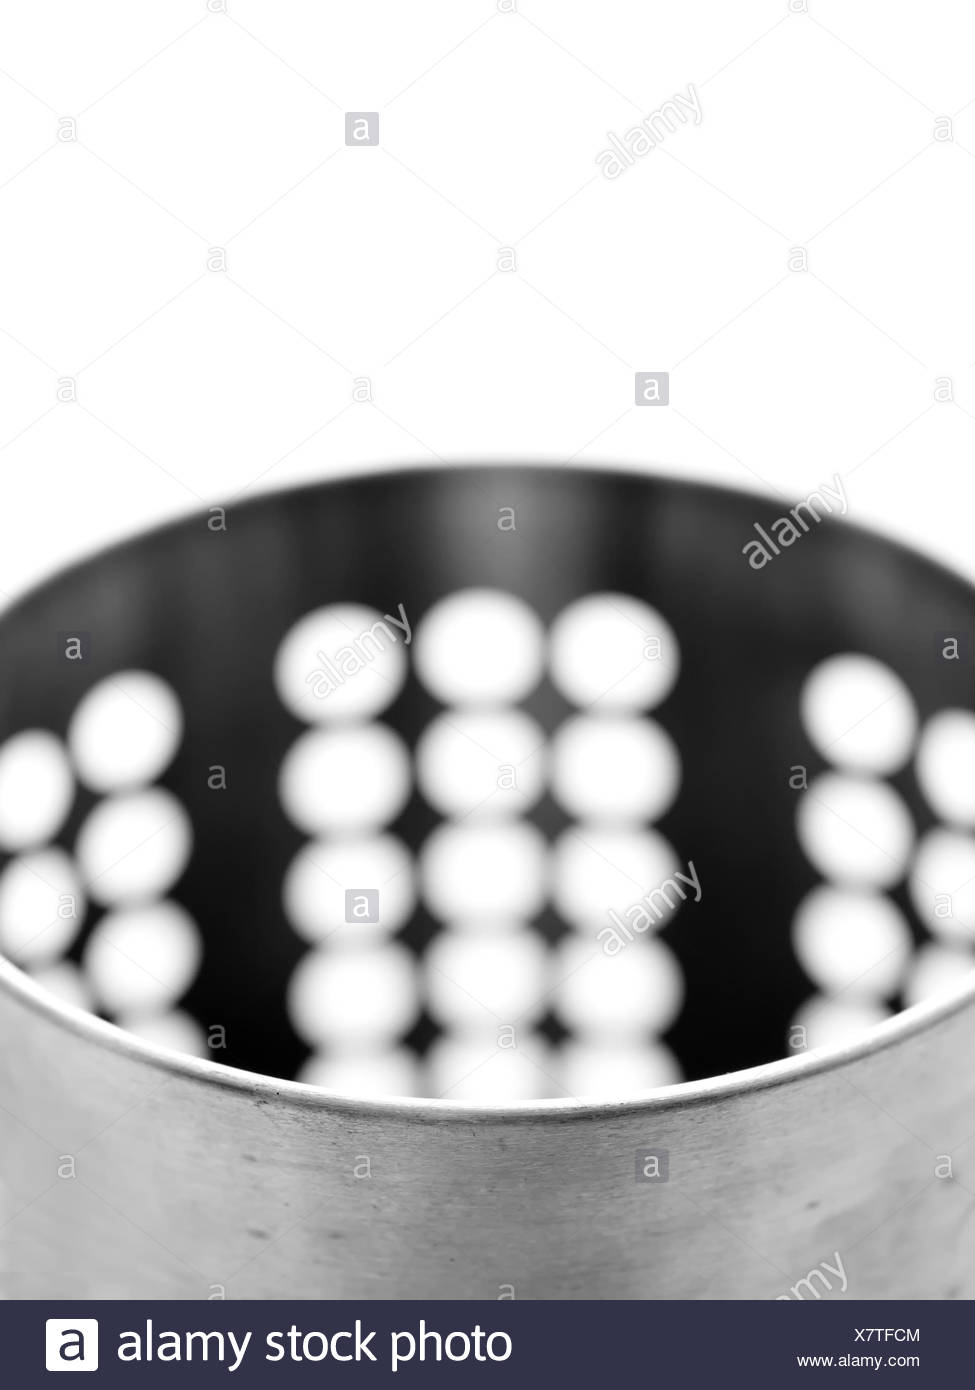 metal container - Stock Image